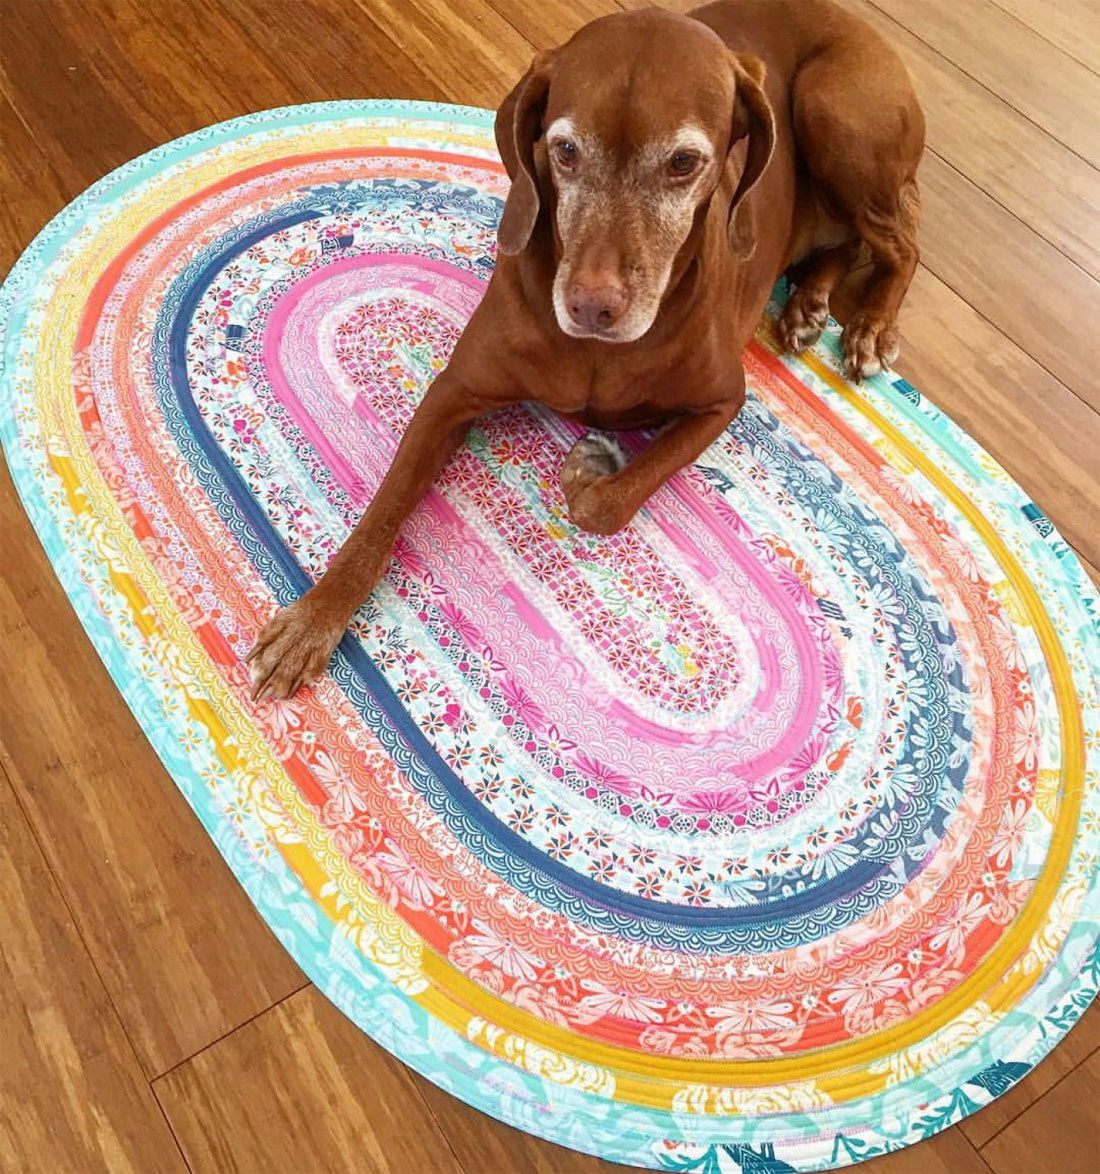 Jelly-Roll-Rug-sewing-pattern-from-RJ-designs-2